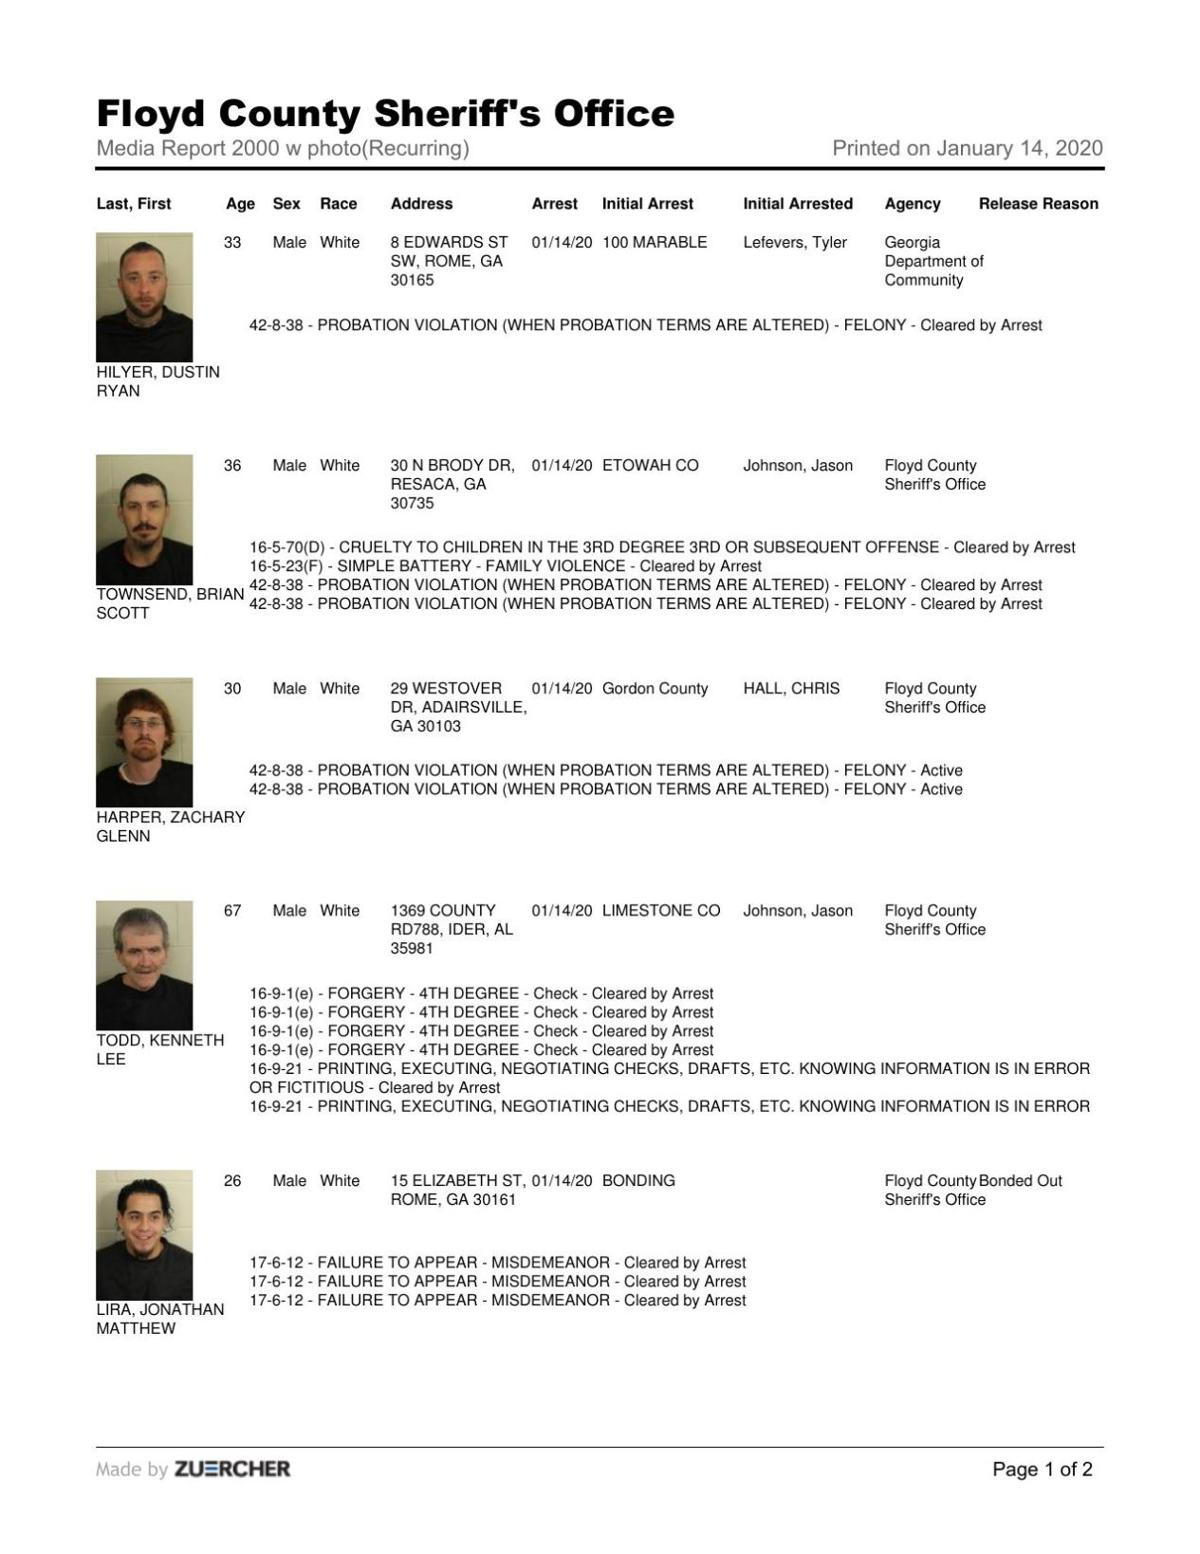 Floyd County Jail report for Tuesday, Jan. 14, 8 p.m.